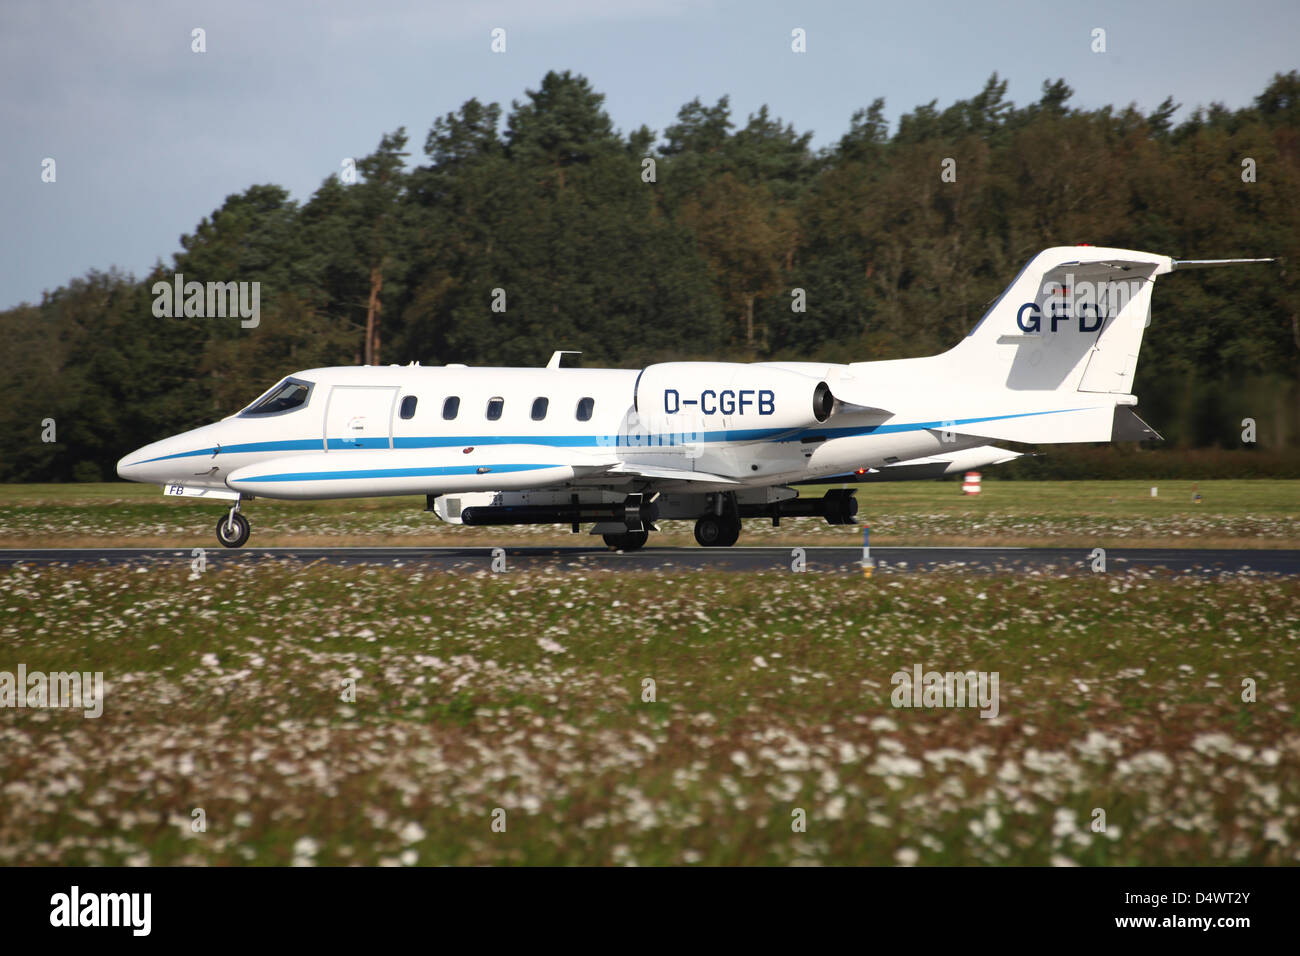 A Learjet of GFD with electronic countermeasure pods contracted by the German Forces for electronic warfare training. - Stock Image